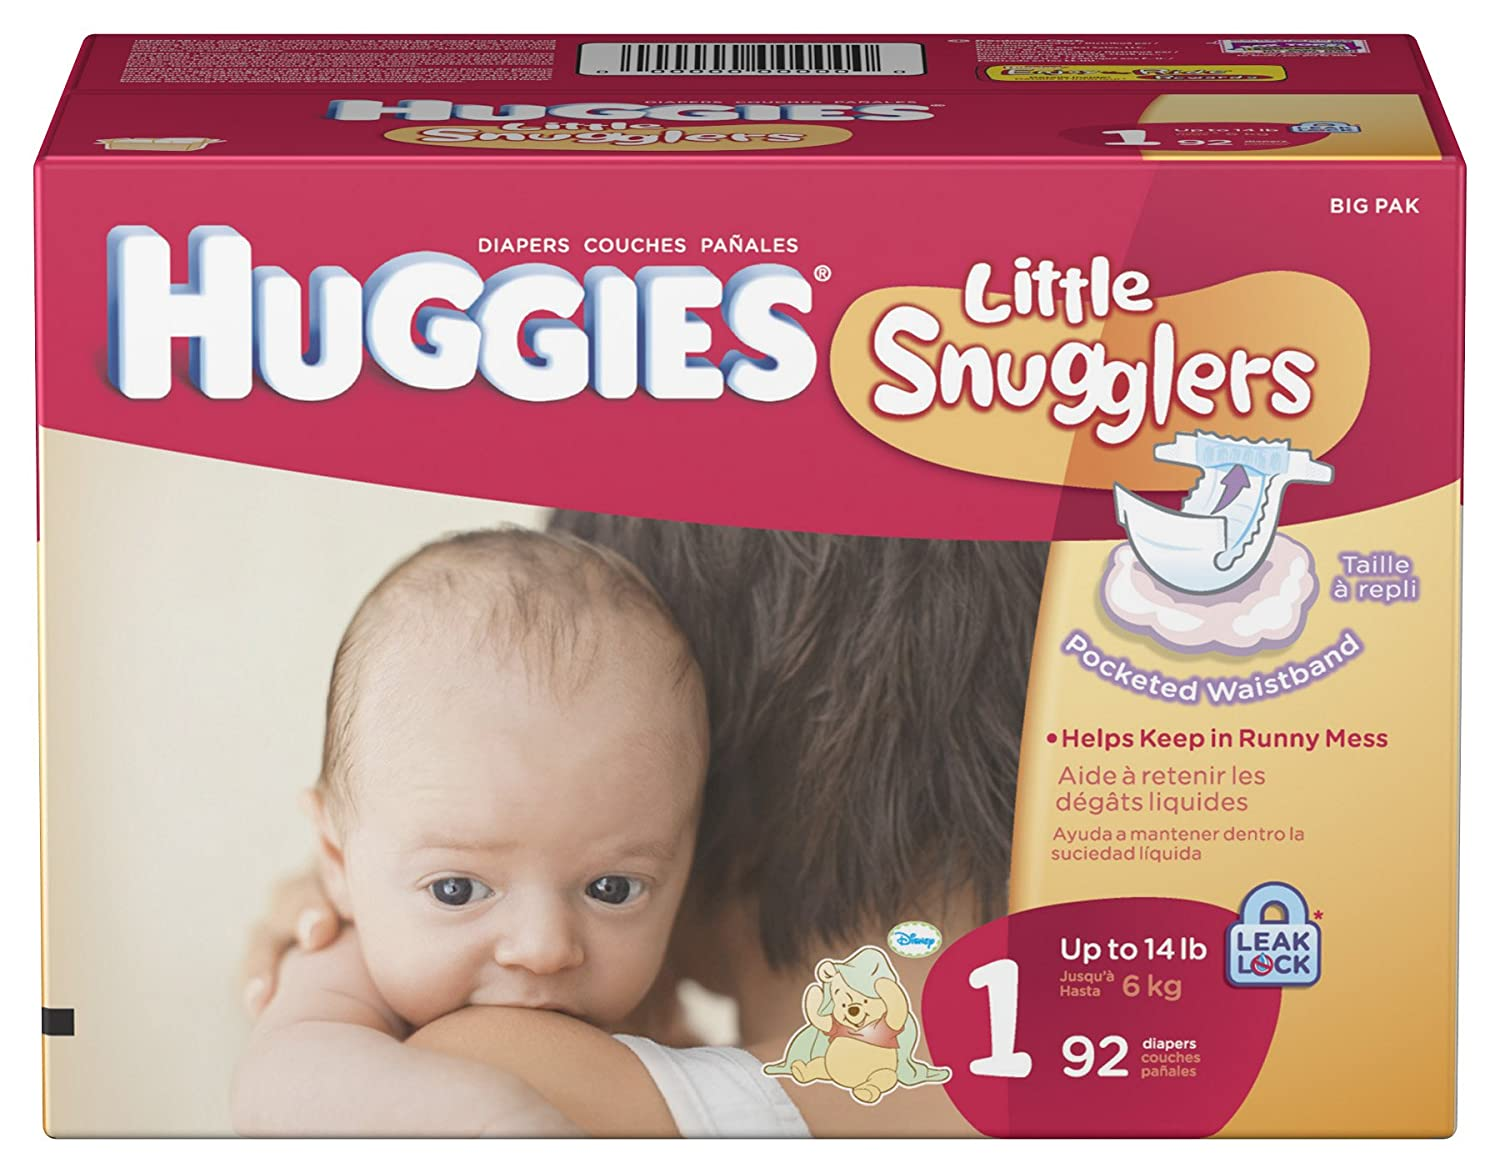 Huggies pull ups diapers car tuning - Amazon Com Huggies Little Snugglers Diapers Size 1 92 Count Health Personal Care